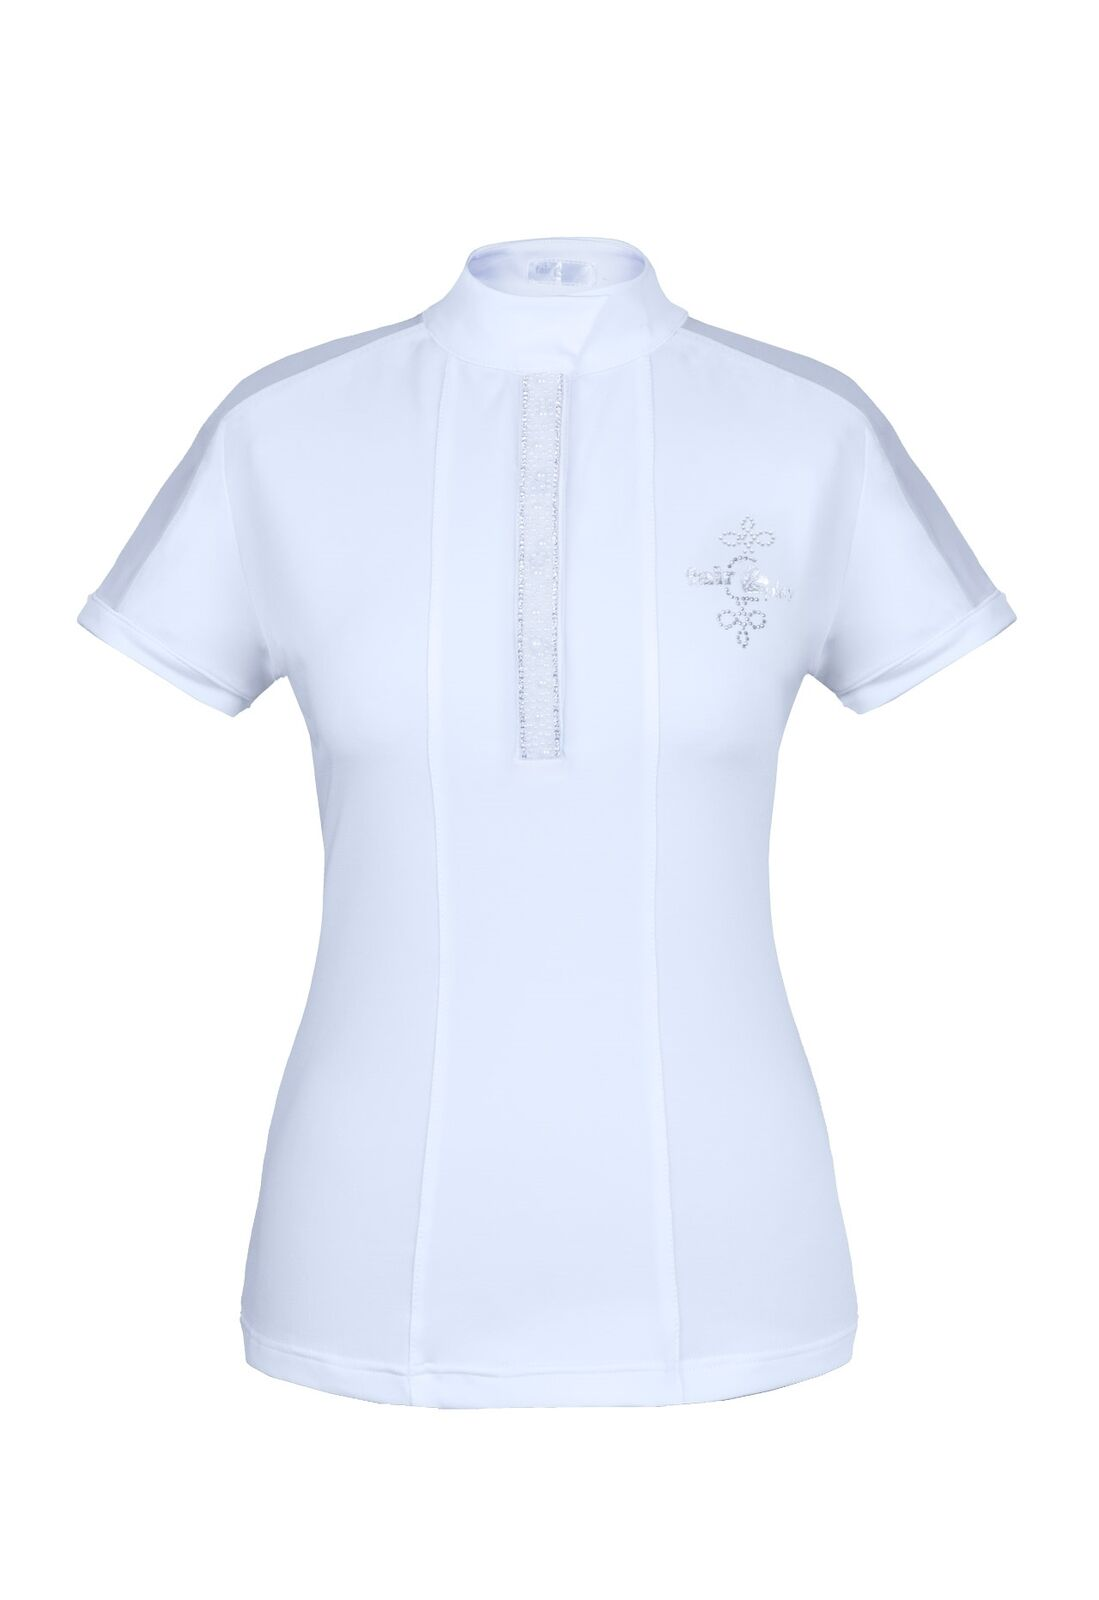 Fairplay Competition Shirt FP Claire, pearl Weiß,